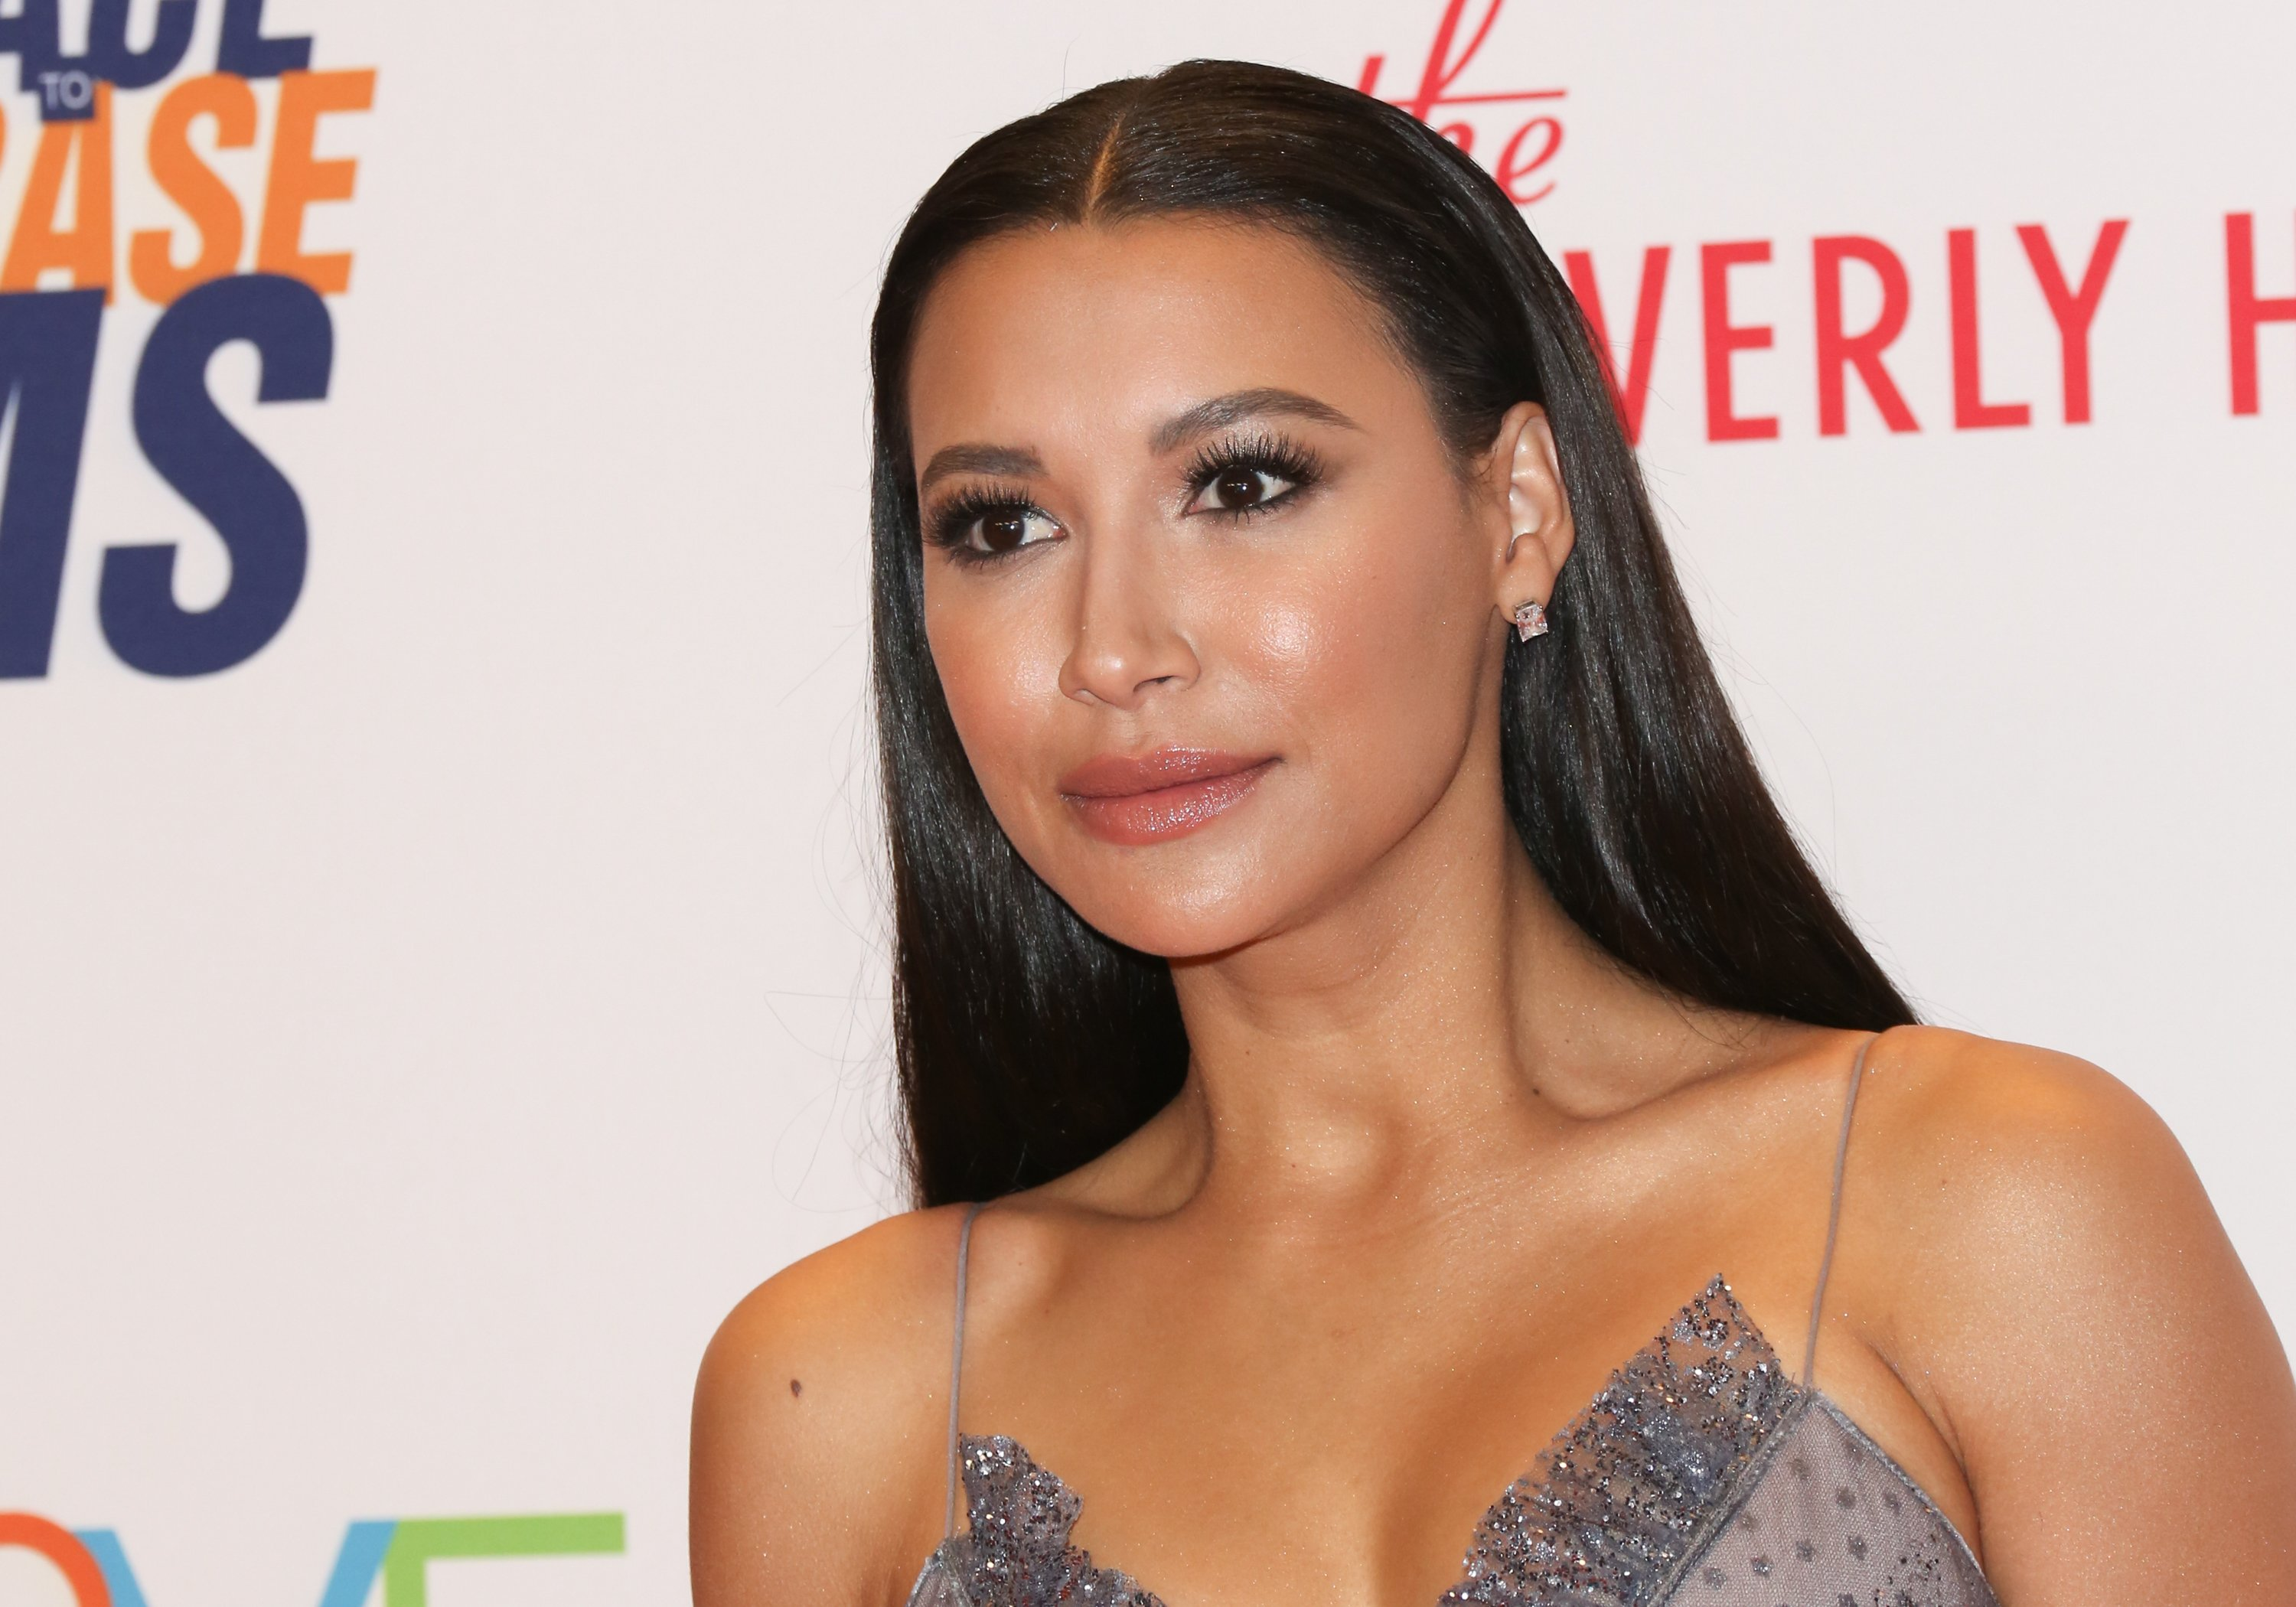 Naya Rivera attends the 24th annual Race to Erase MS gala at the Beverly Hilton hotel on May 5, 2017. | Photo: Getty Images